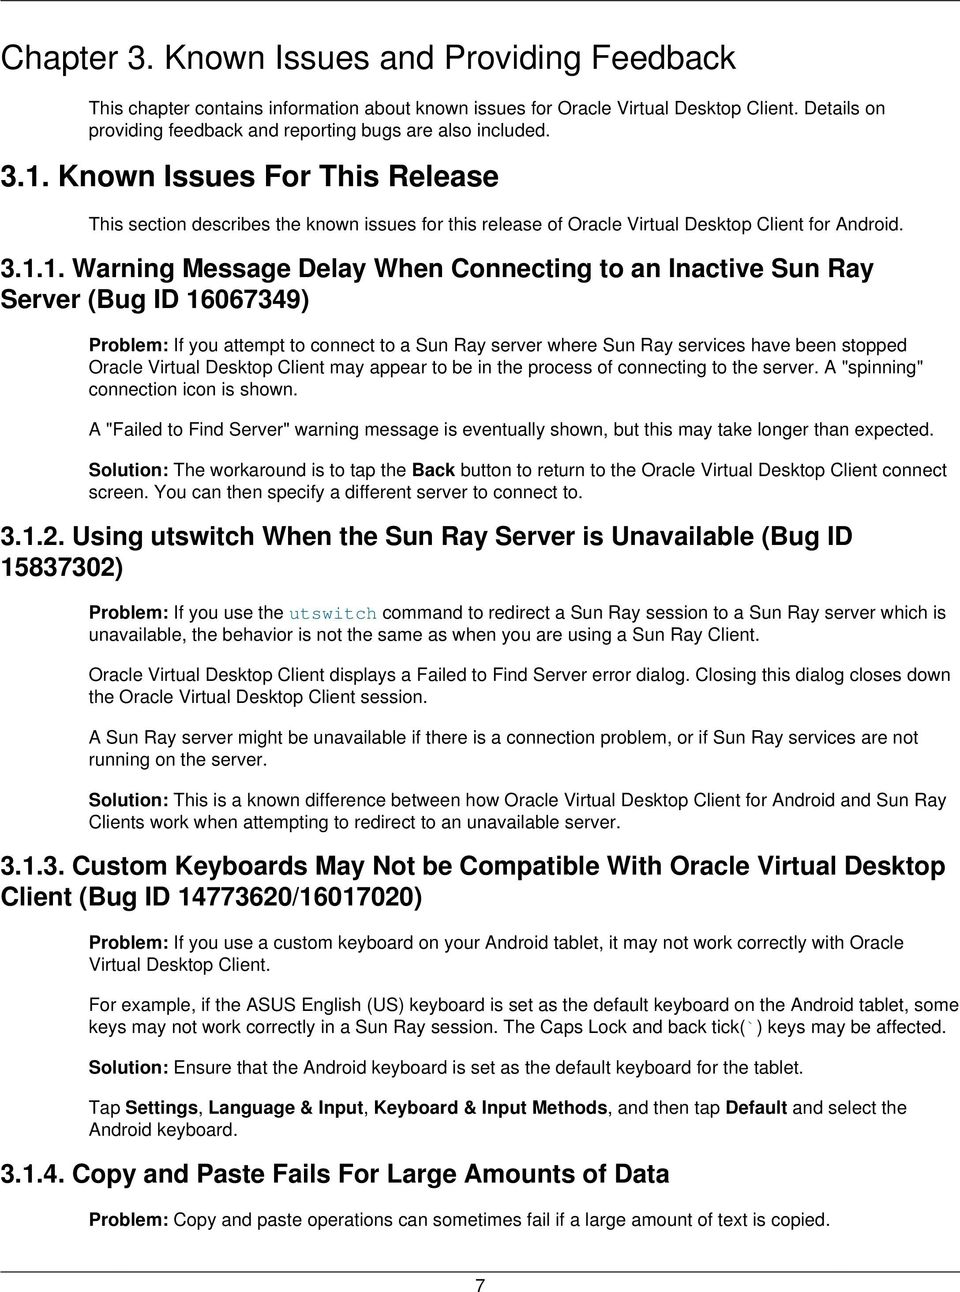 Known Issues For This Release This section describes the known issues for this release of Oracle Virtual Desktop Client for Android. 3.1.